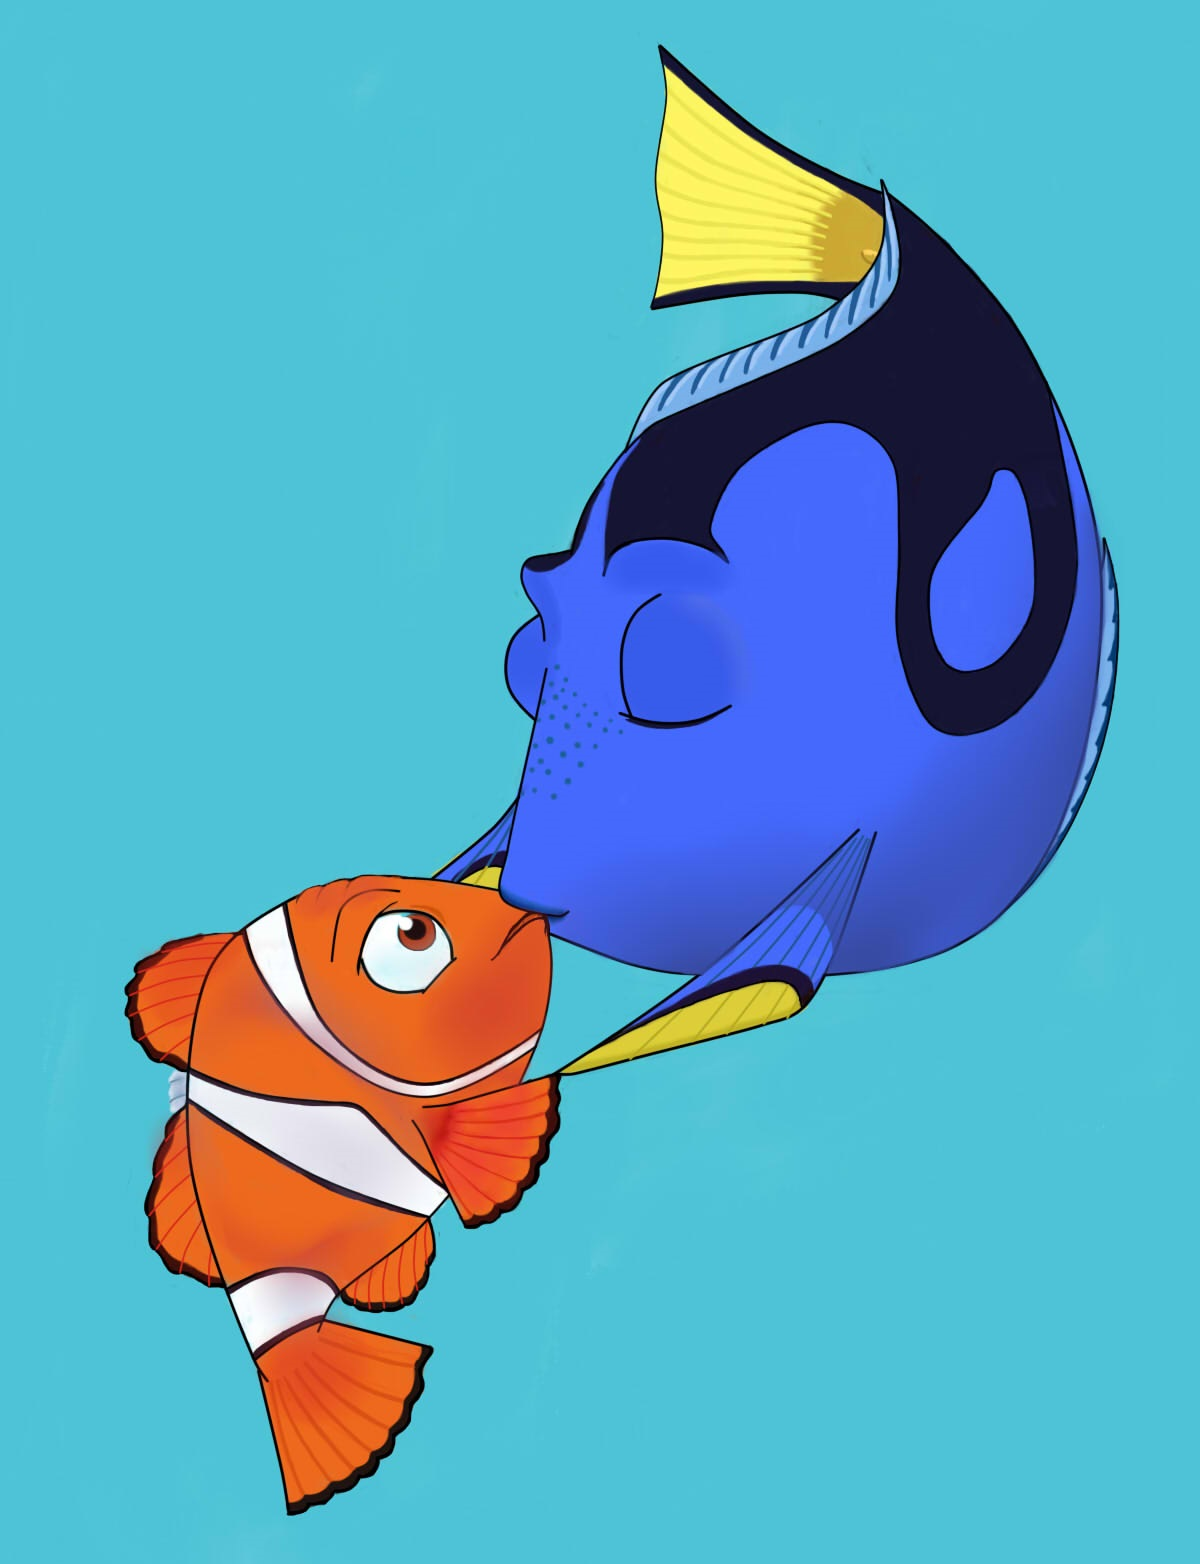 dory and marlin relationship